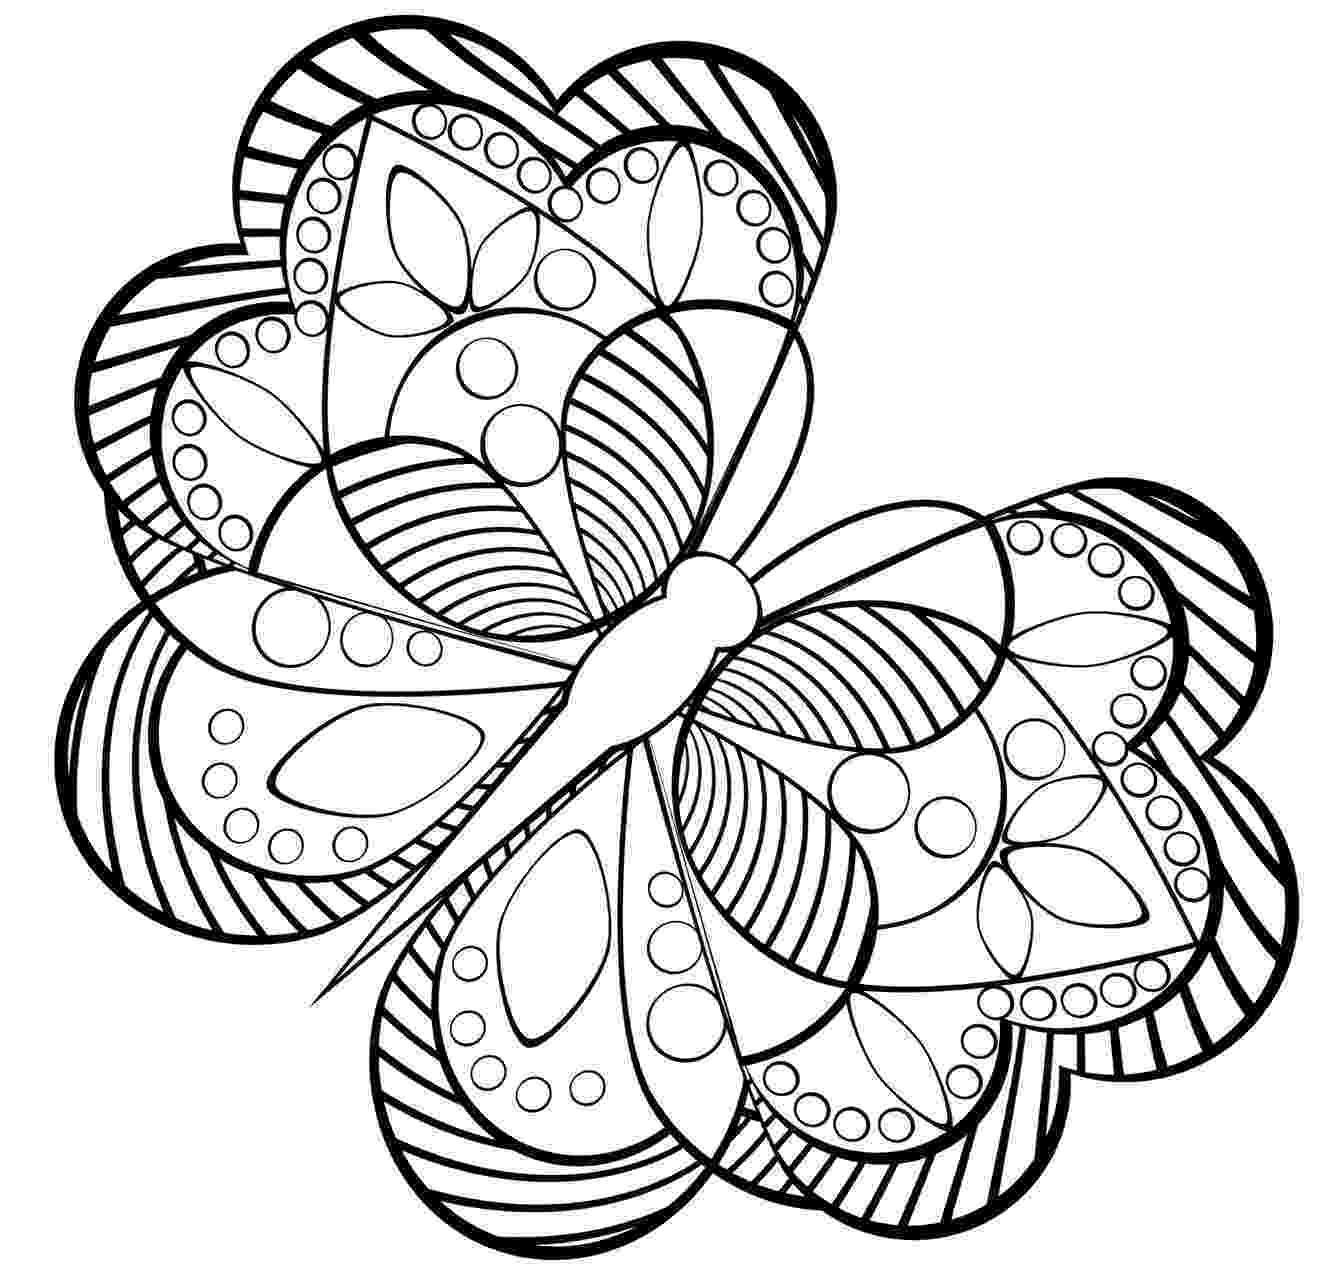 colouring therapy patterns therapy coloring pages to download and print for free therapy colouring patterns